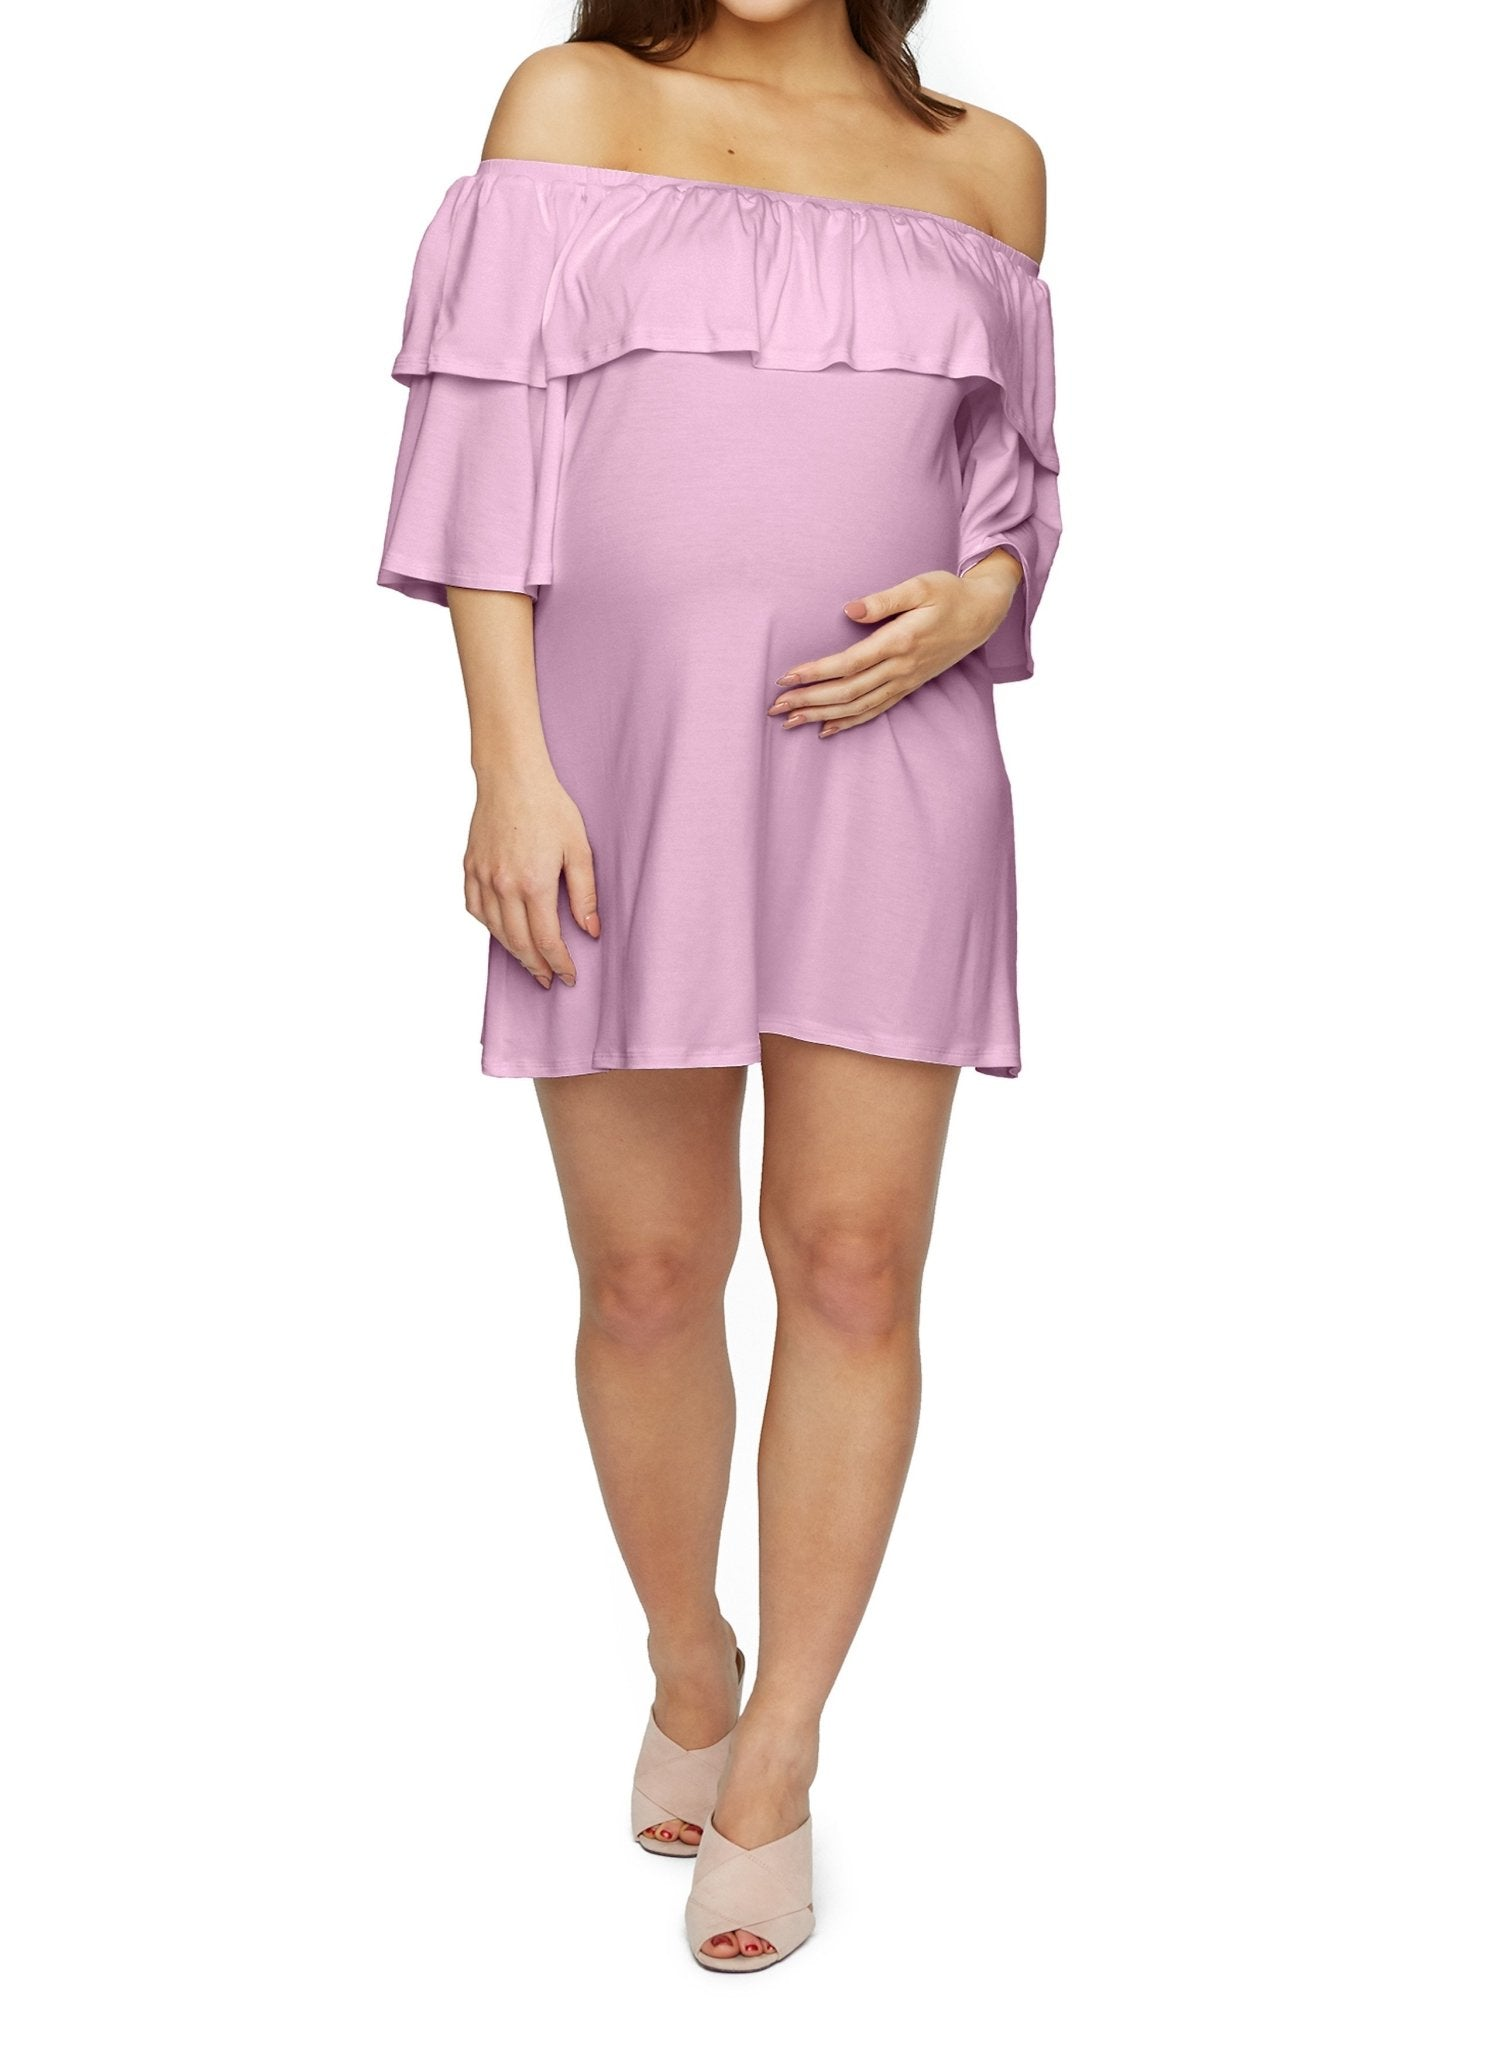 Kylian Maternity Dress - Mums and Bumps